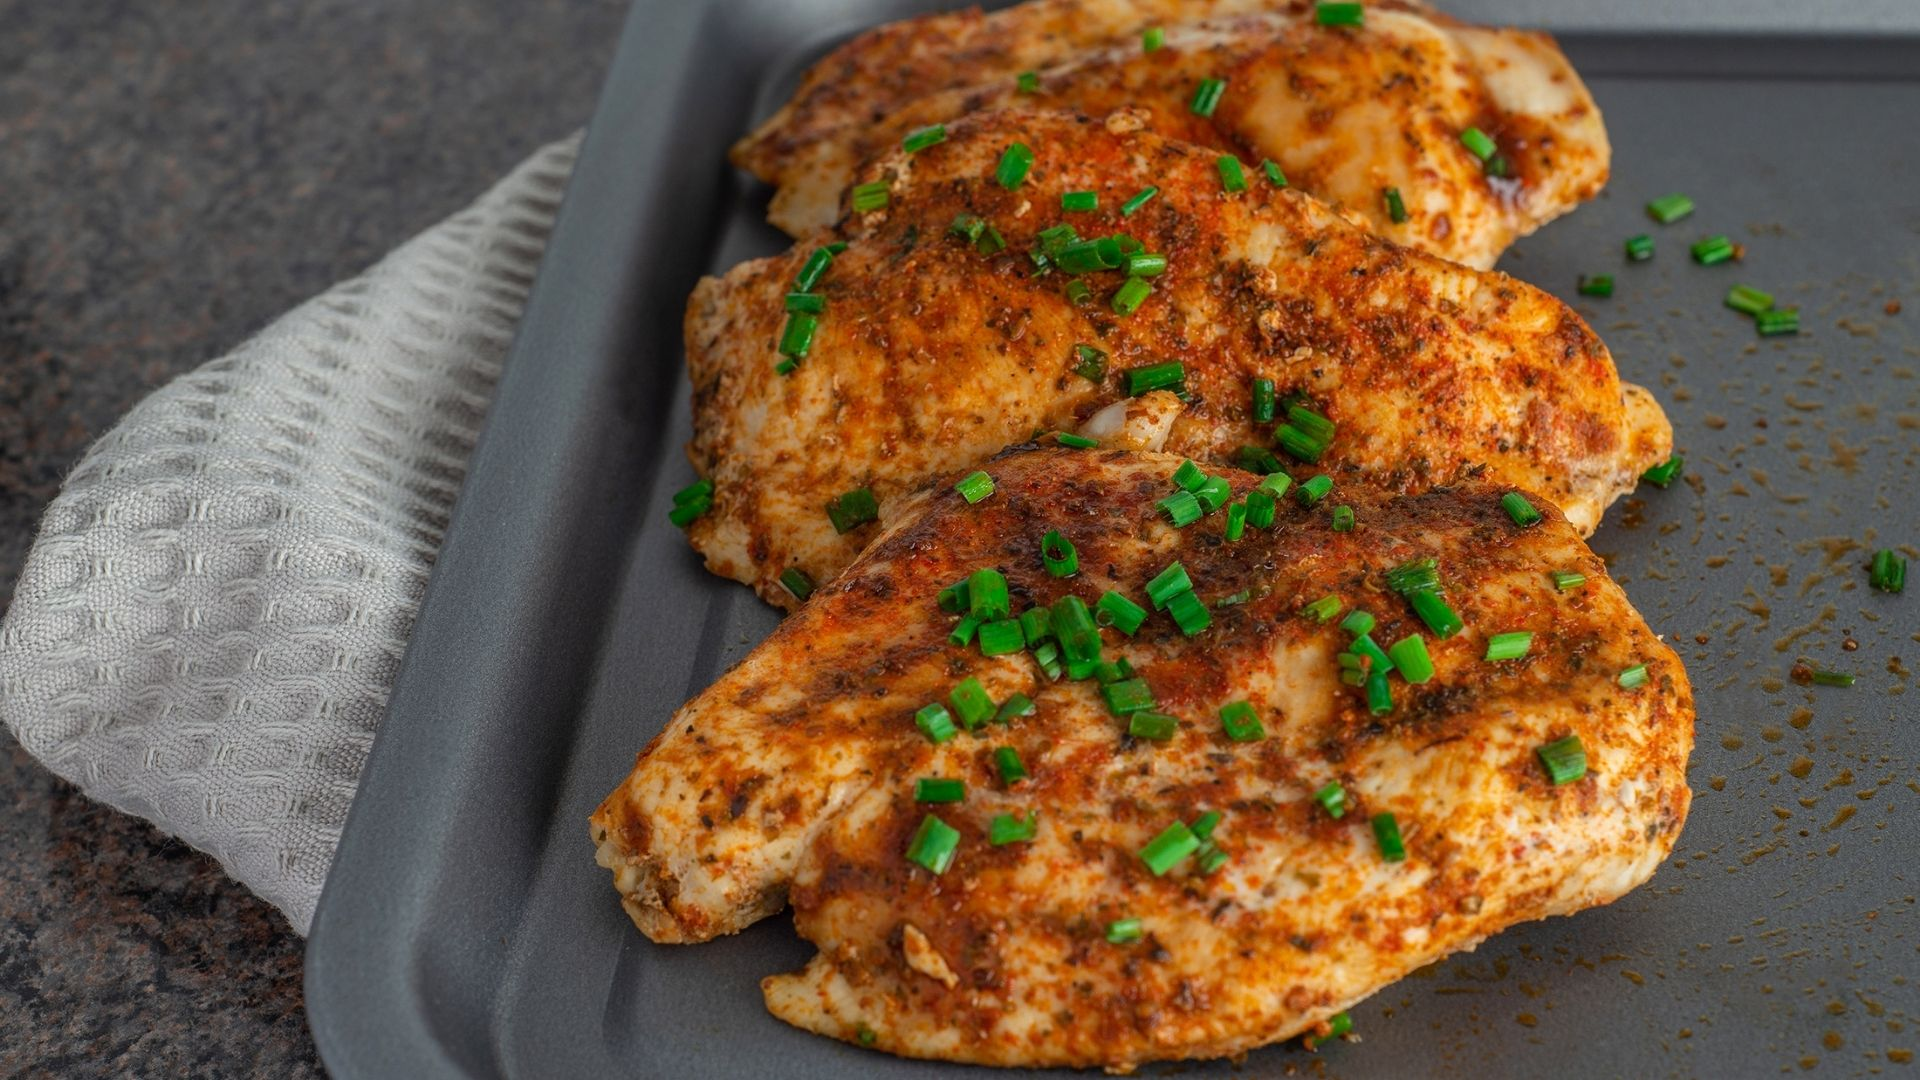 Featured image for How to Bake Chicken Breasts in a Toaster Oven